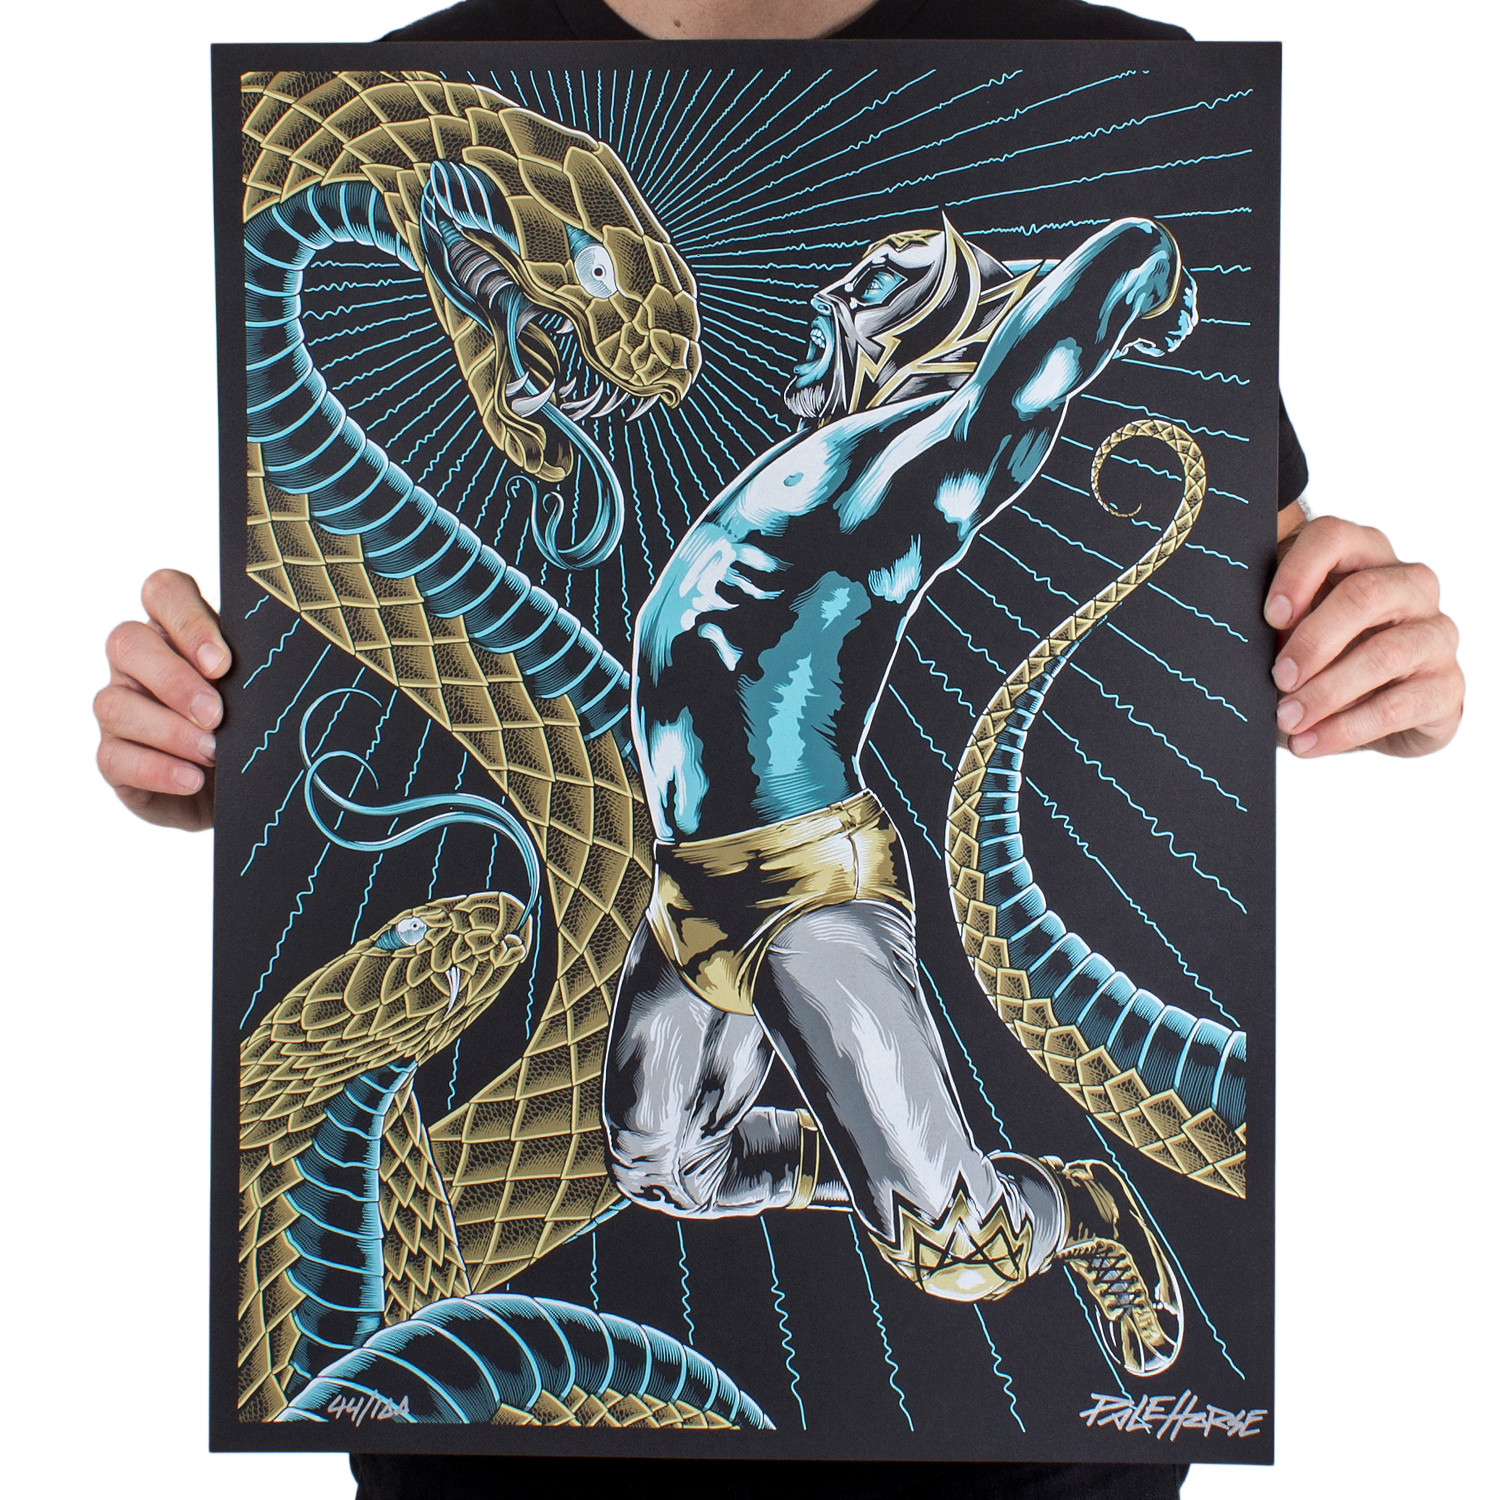 """The Oracle & The Serpent"" by Pale Horse.  18"" x 24"" 8-color Screenprint.  Ed of 100 S/N.  $30"